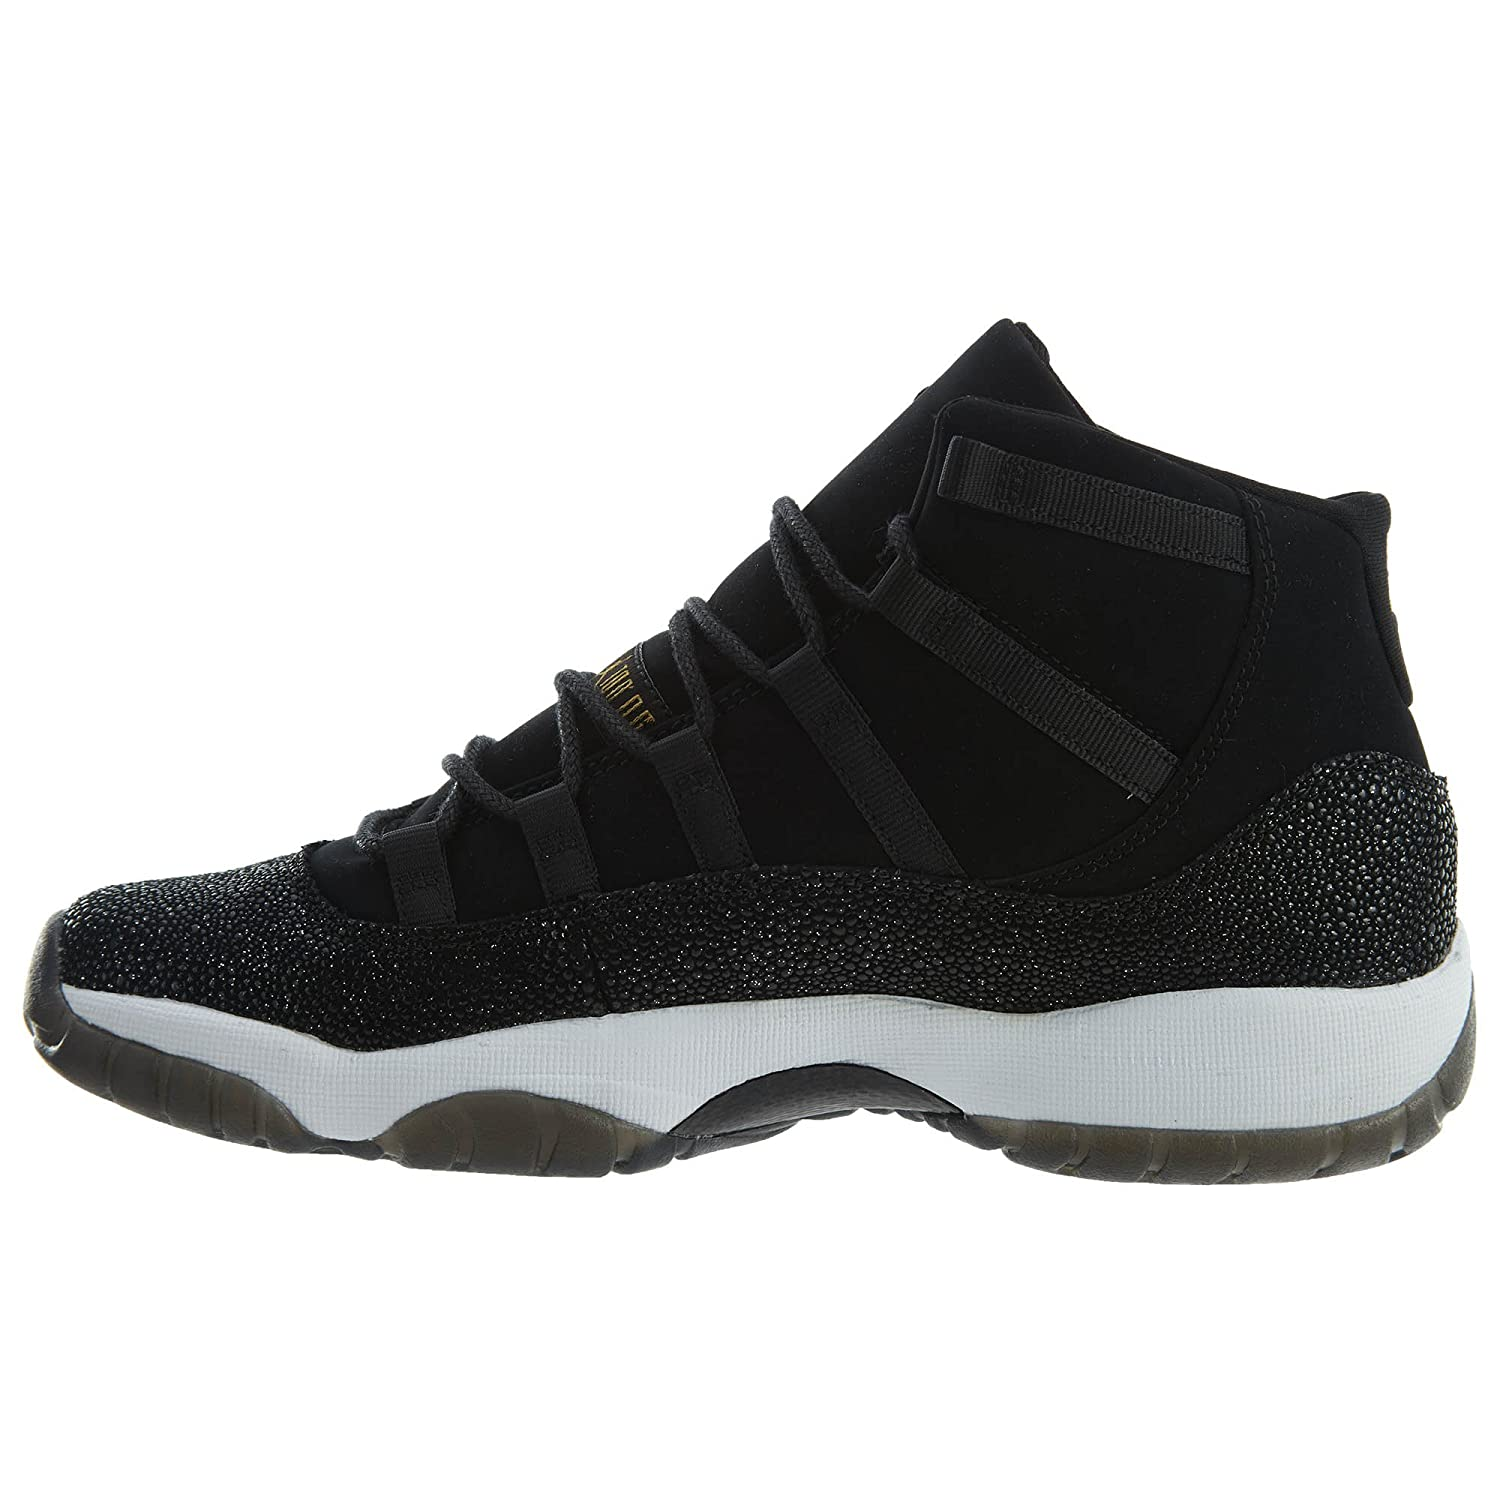 new style b9c5c e76ca Amazon.com   Air Jordan 11 Retro Prem HC GG